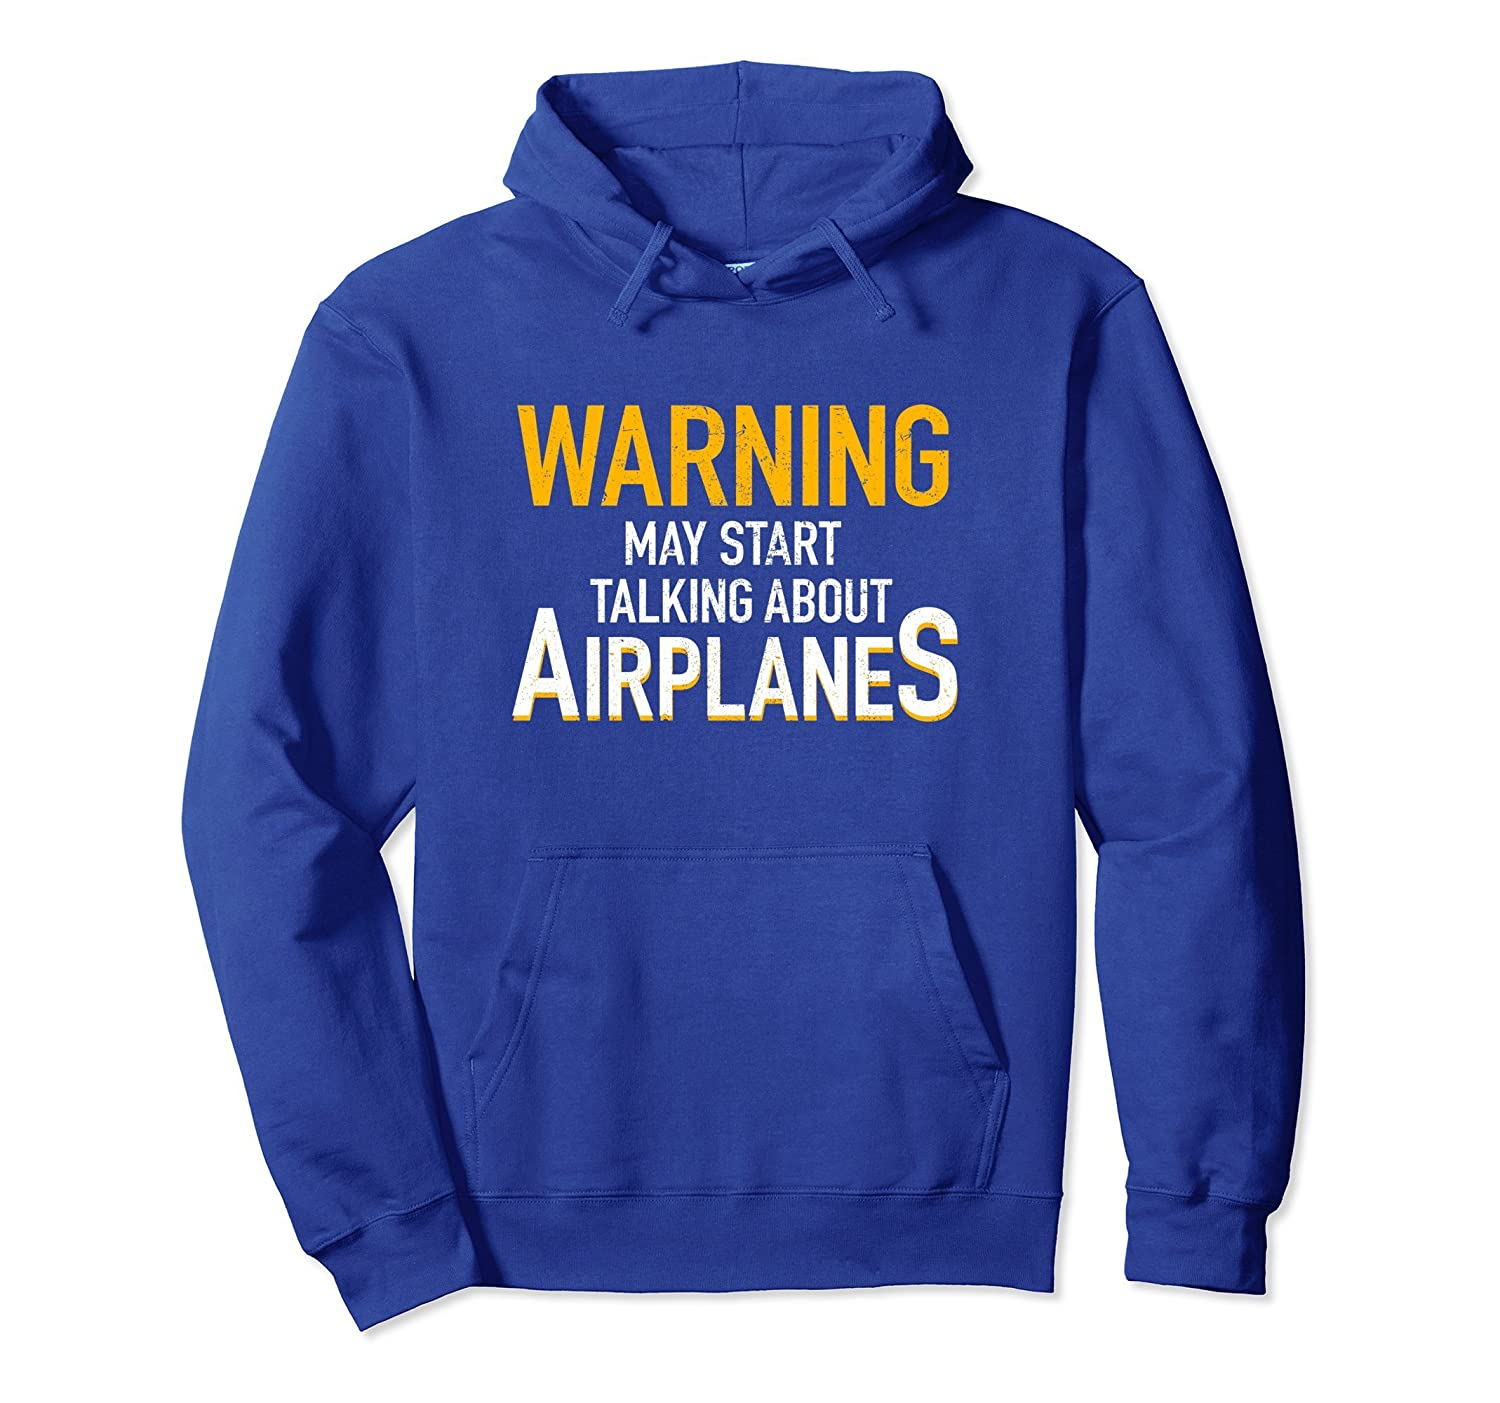 Funny Airplane RC Pilot Flying Gift Warning Airplanes Hoodie-Rose